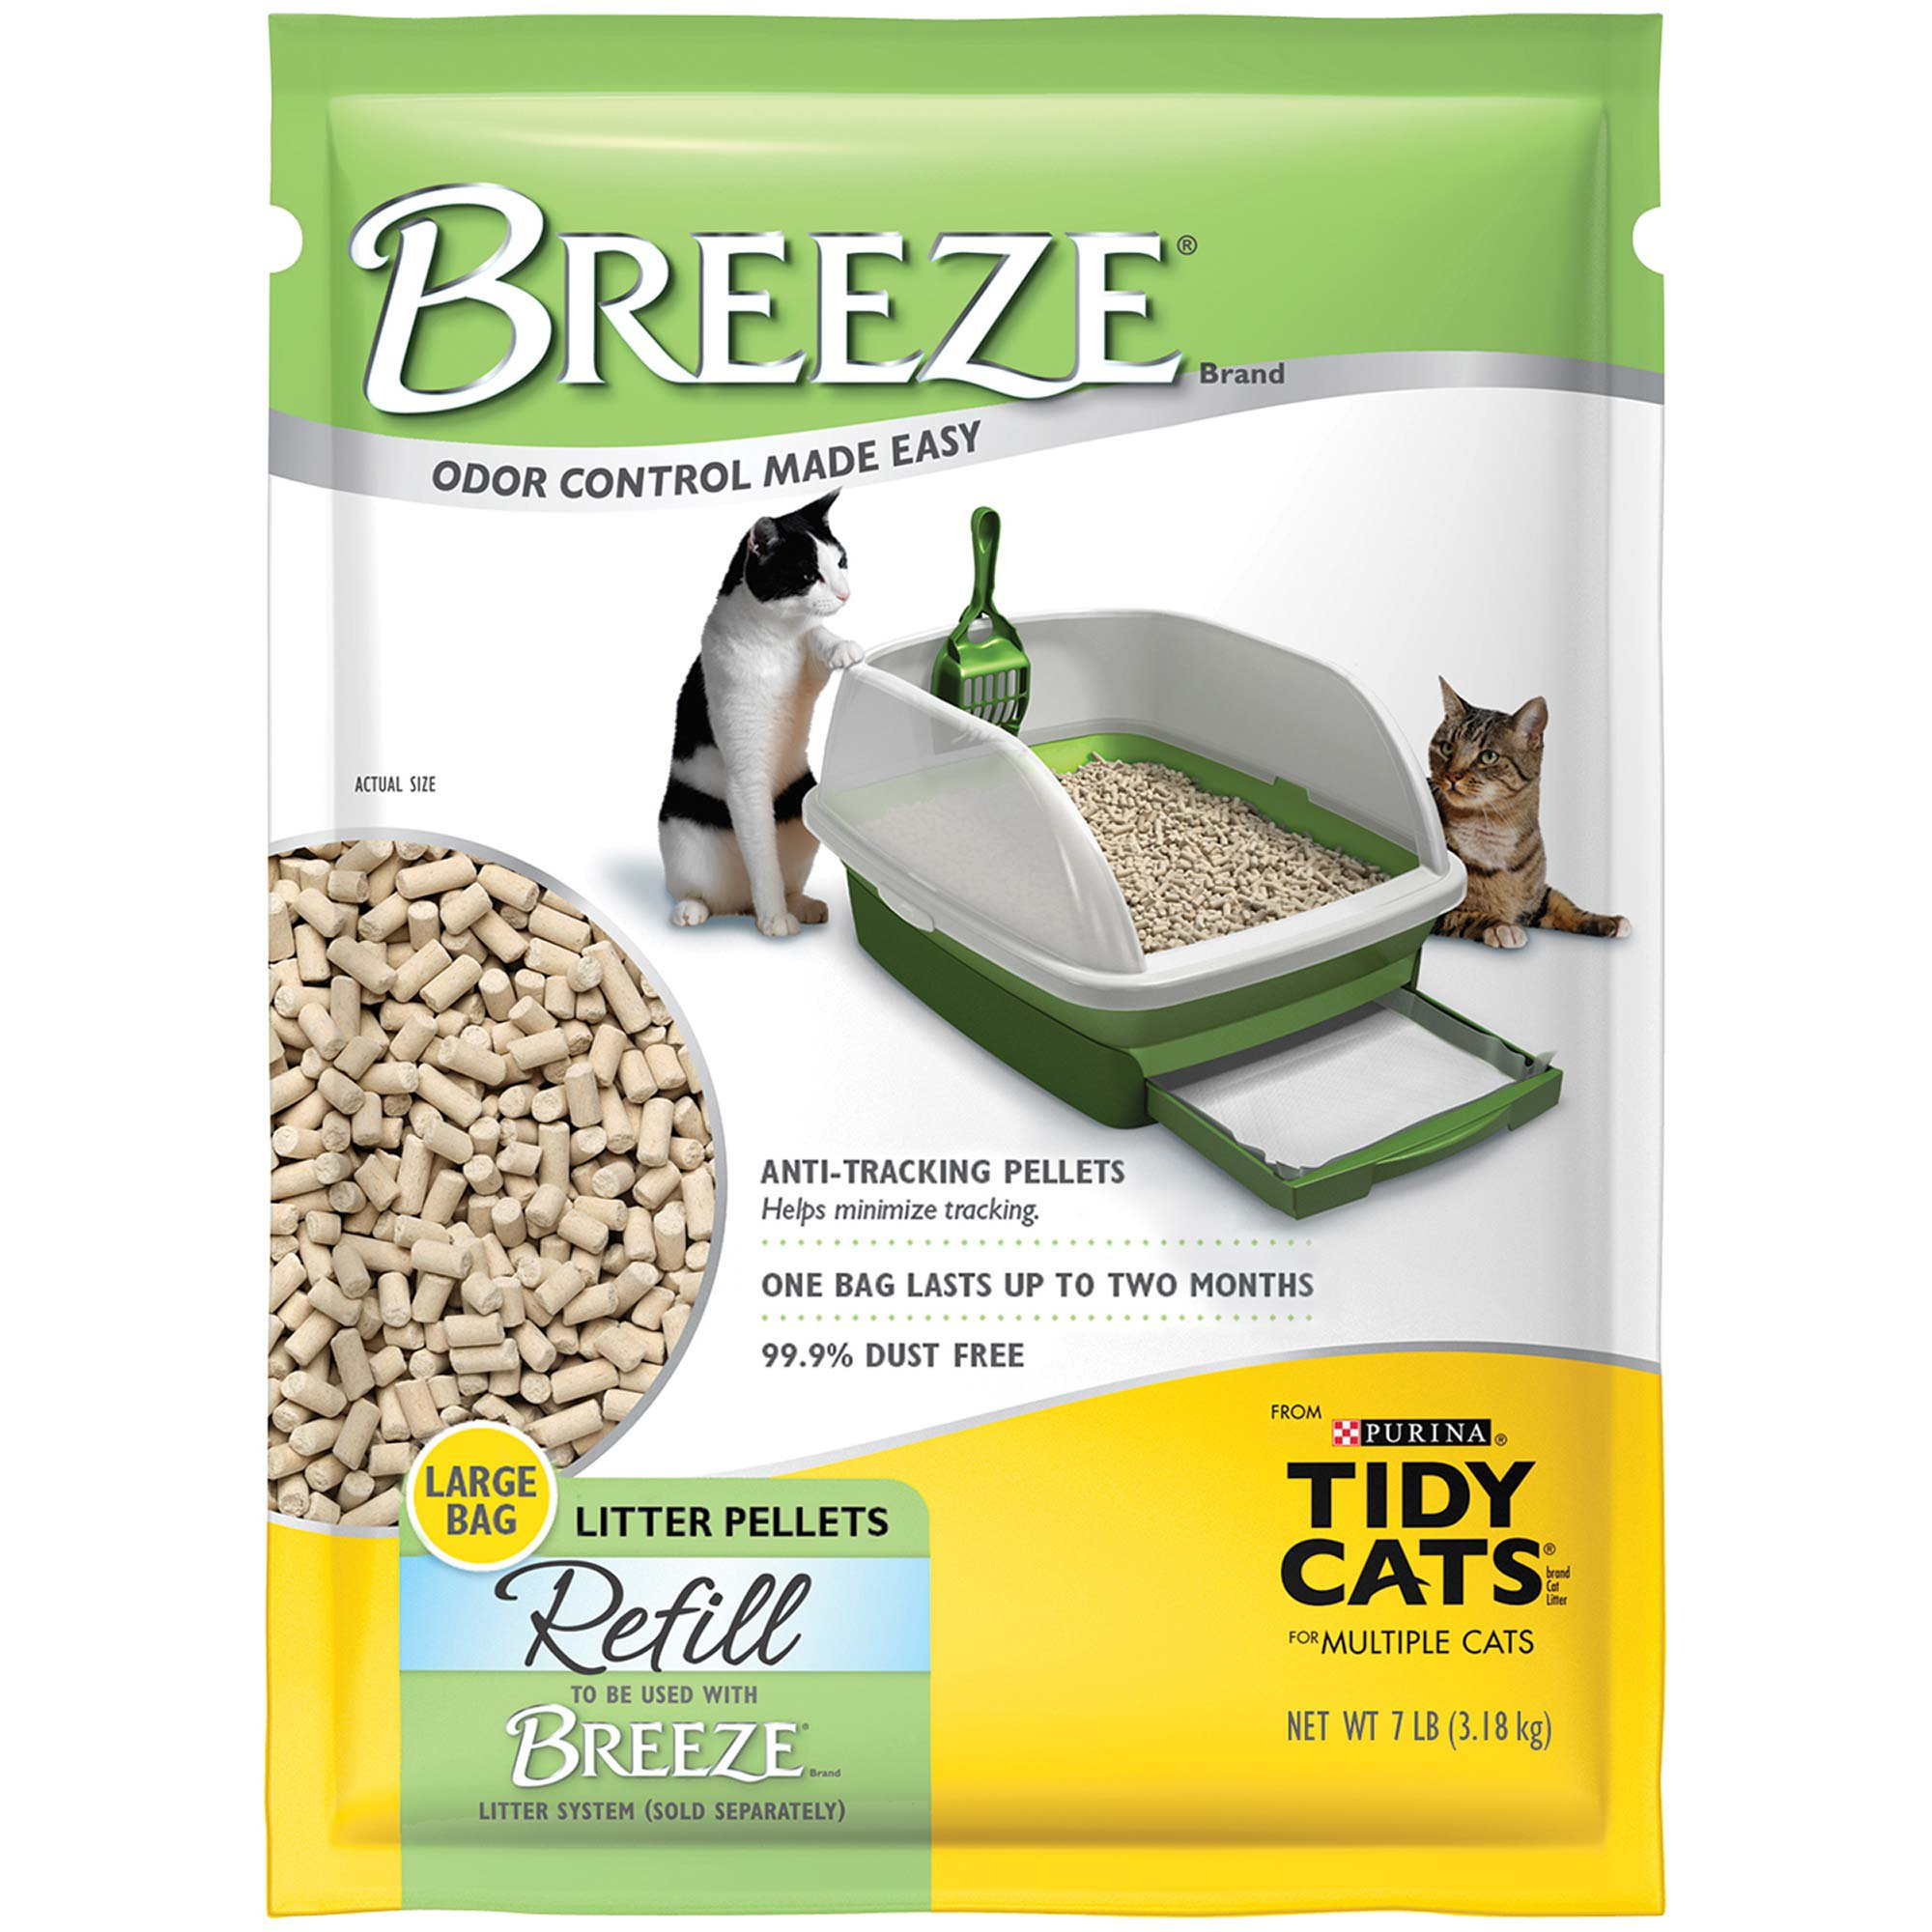 Purina Tidy Cats Breeze Pellets Refill Litter for Multiple Cats, 7 lbs.